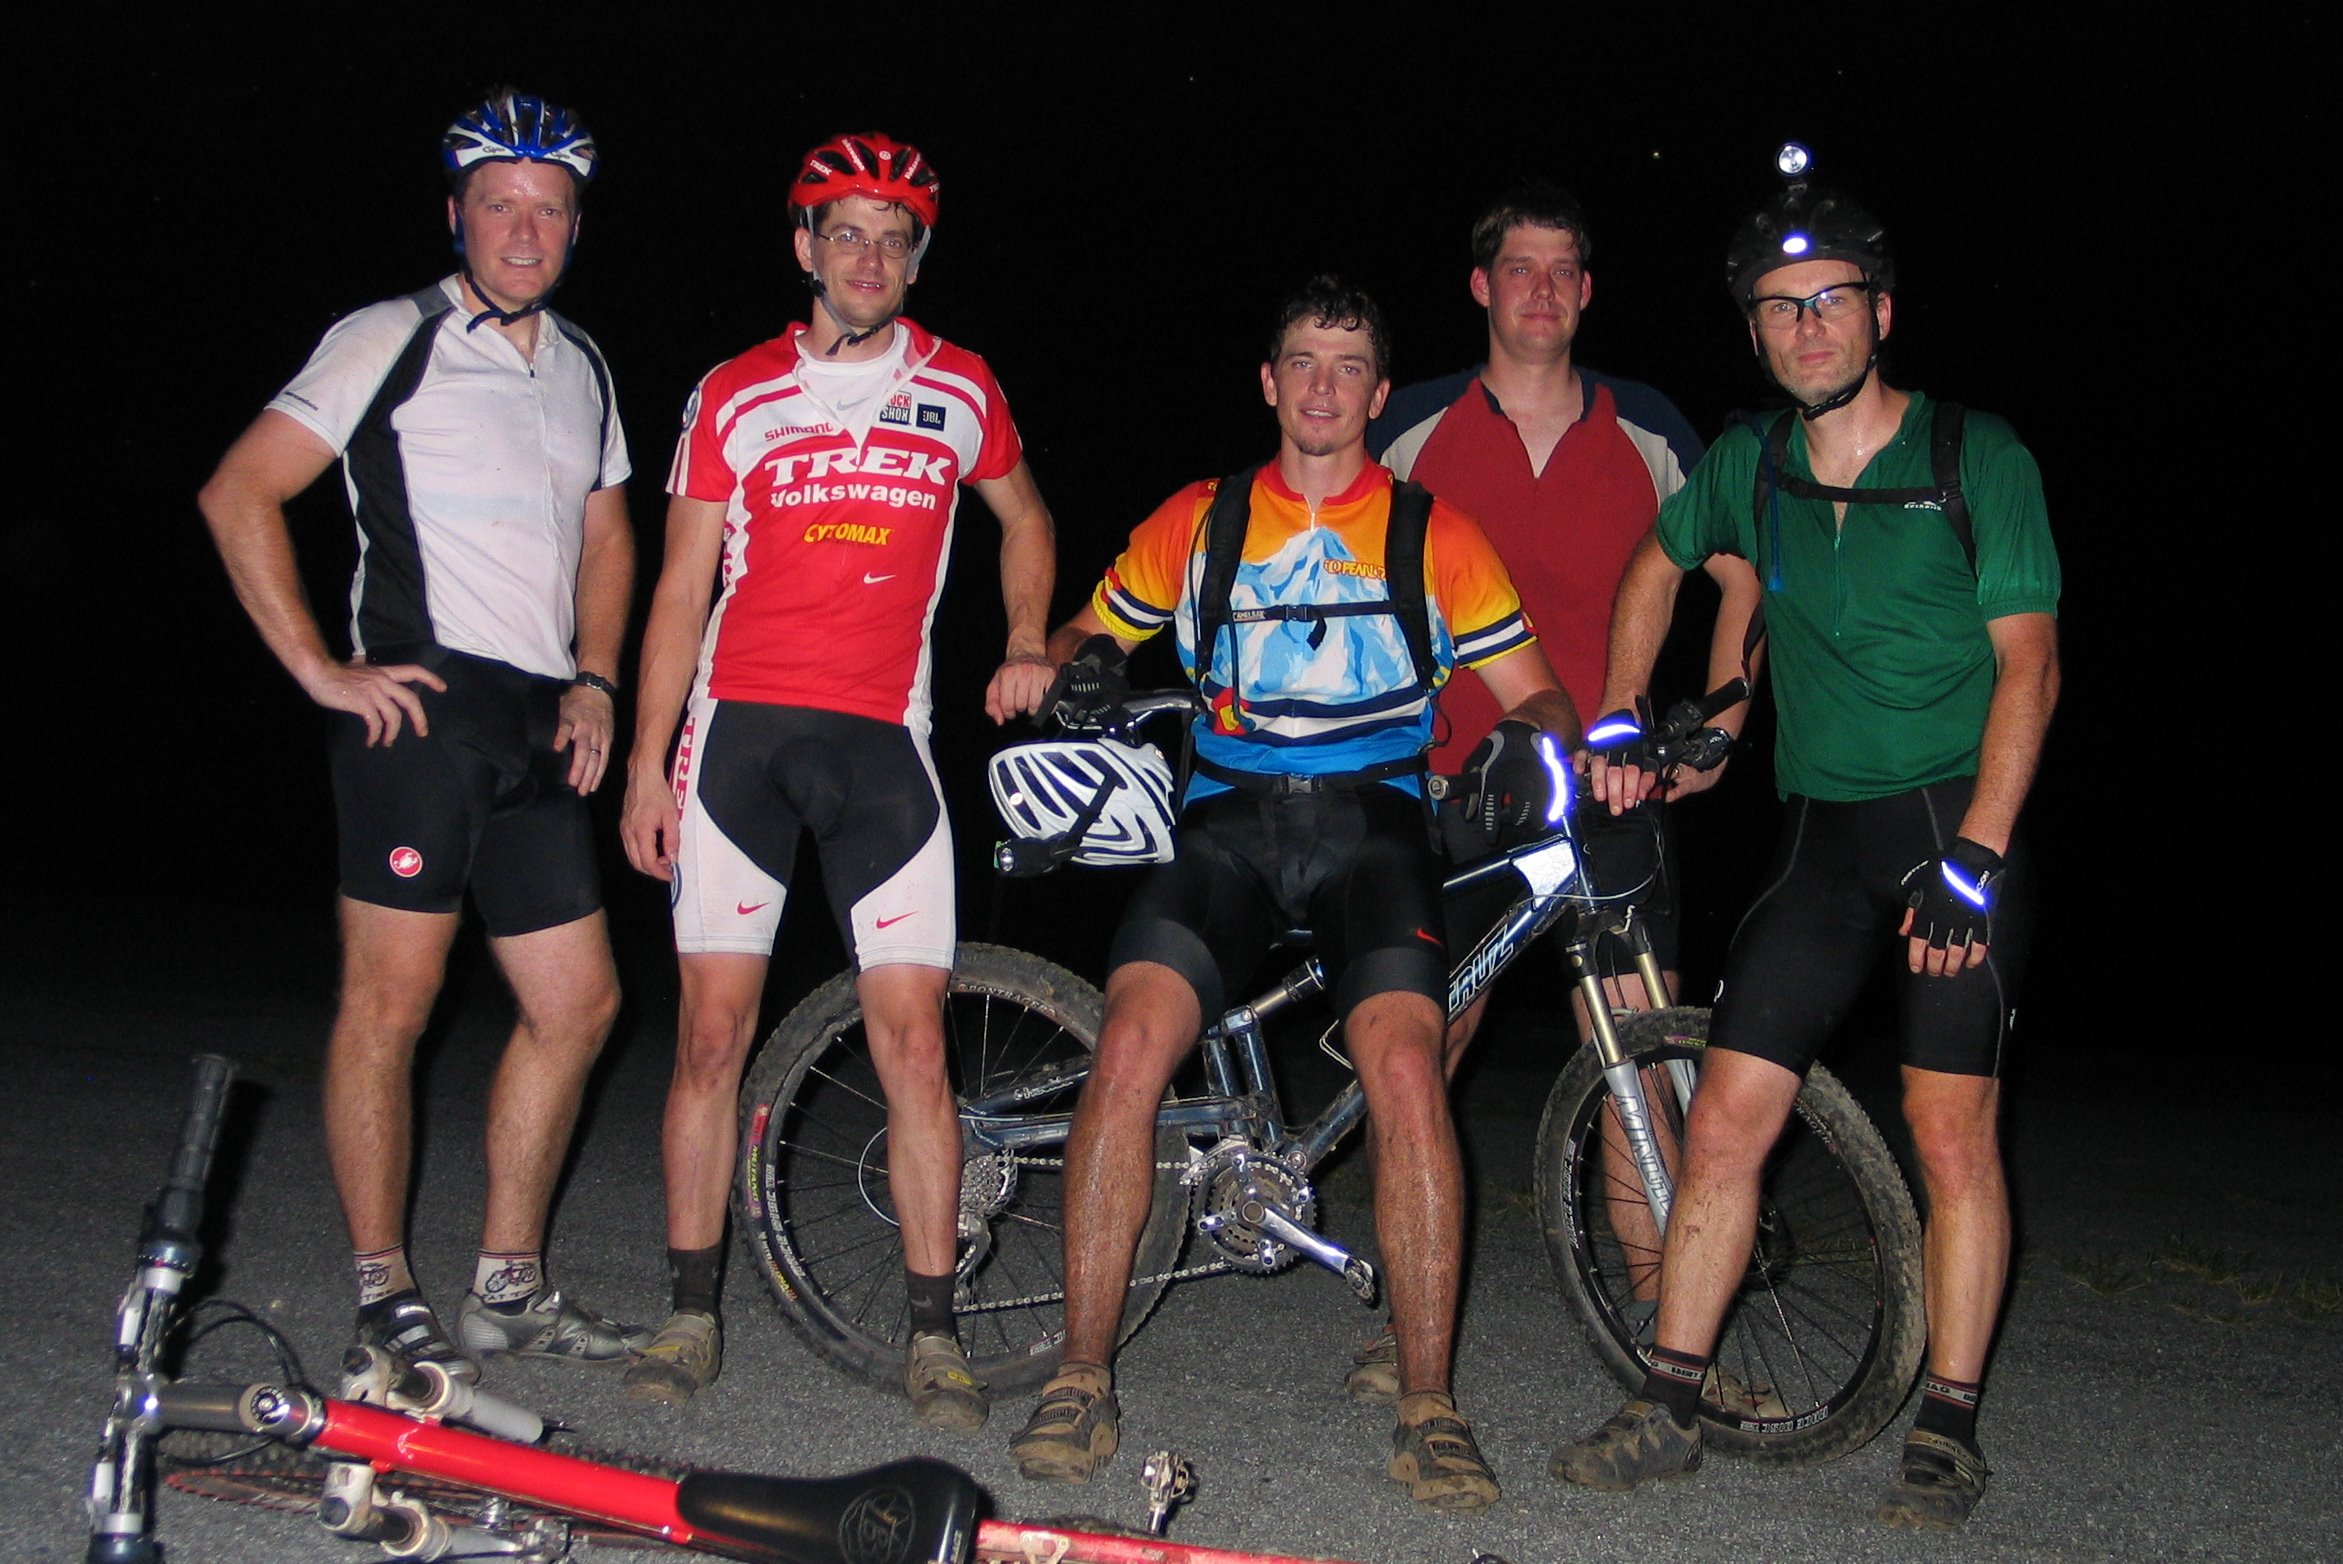 Trailwork superstars (Left to right) Ted G., Cap'n Shawn, DT, FatTireWilly, and Dr. Woton, of Team Lucky Green.